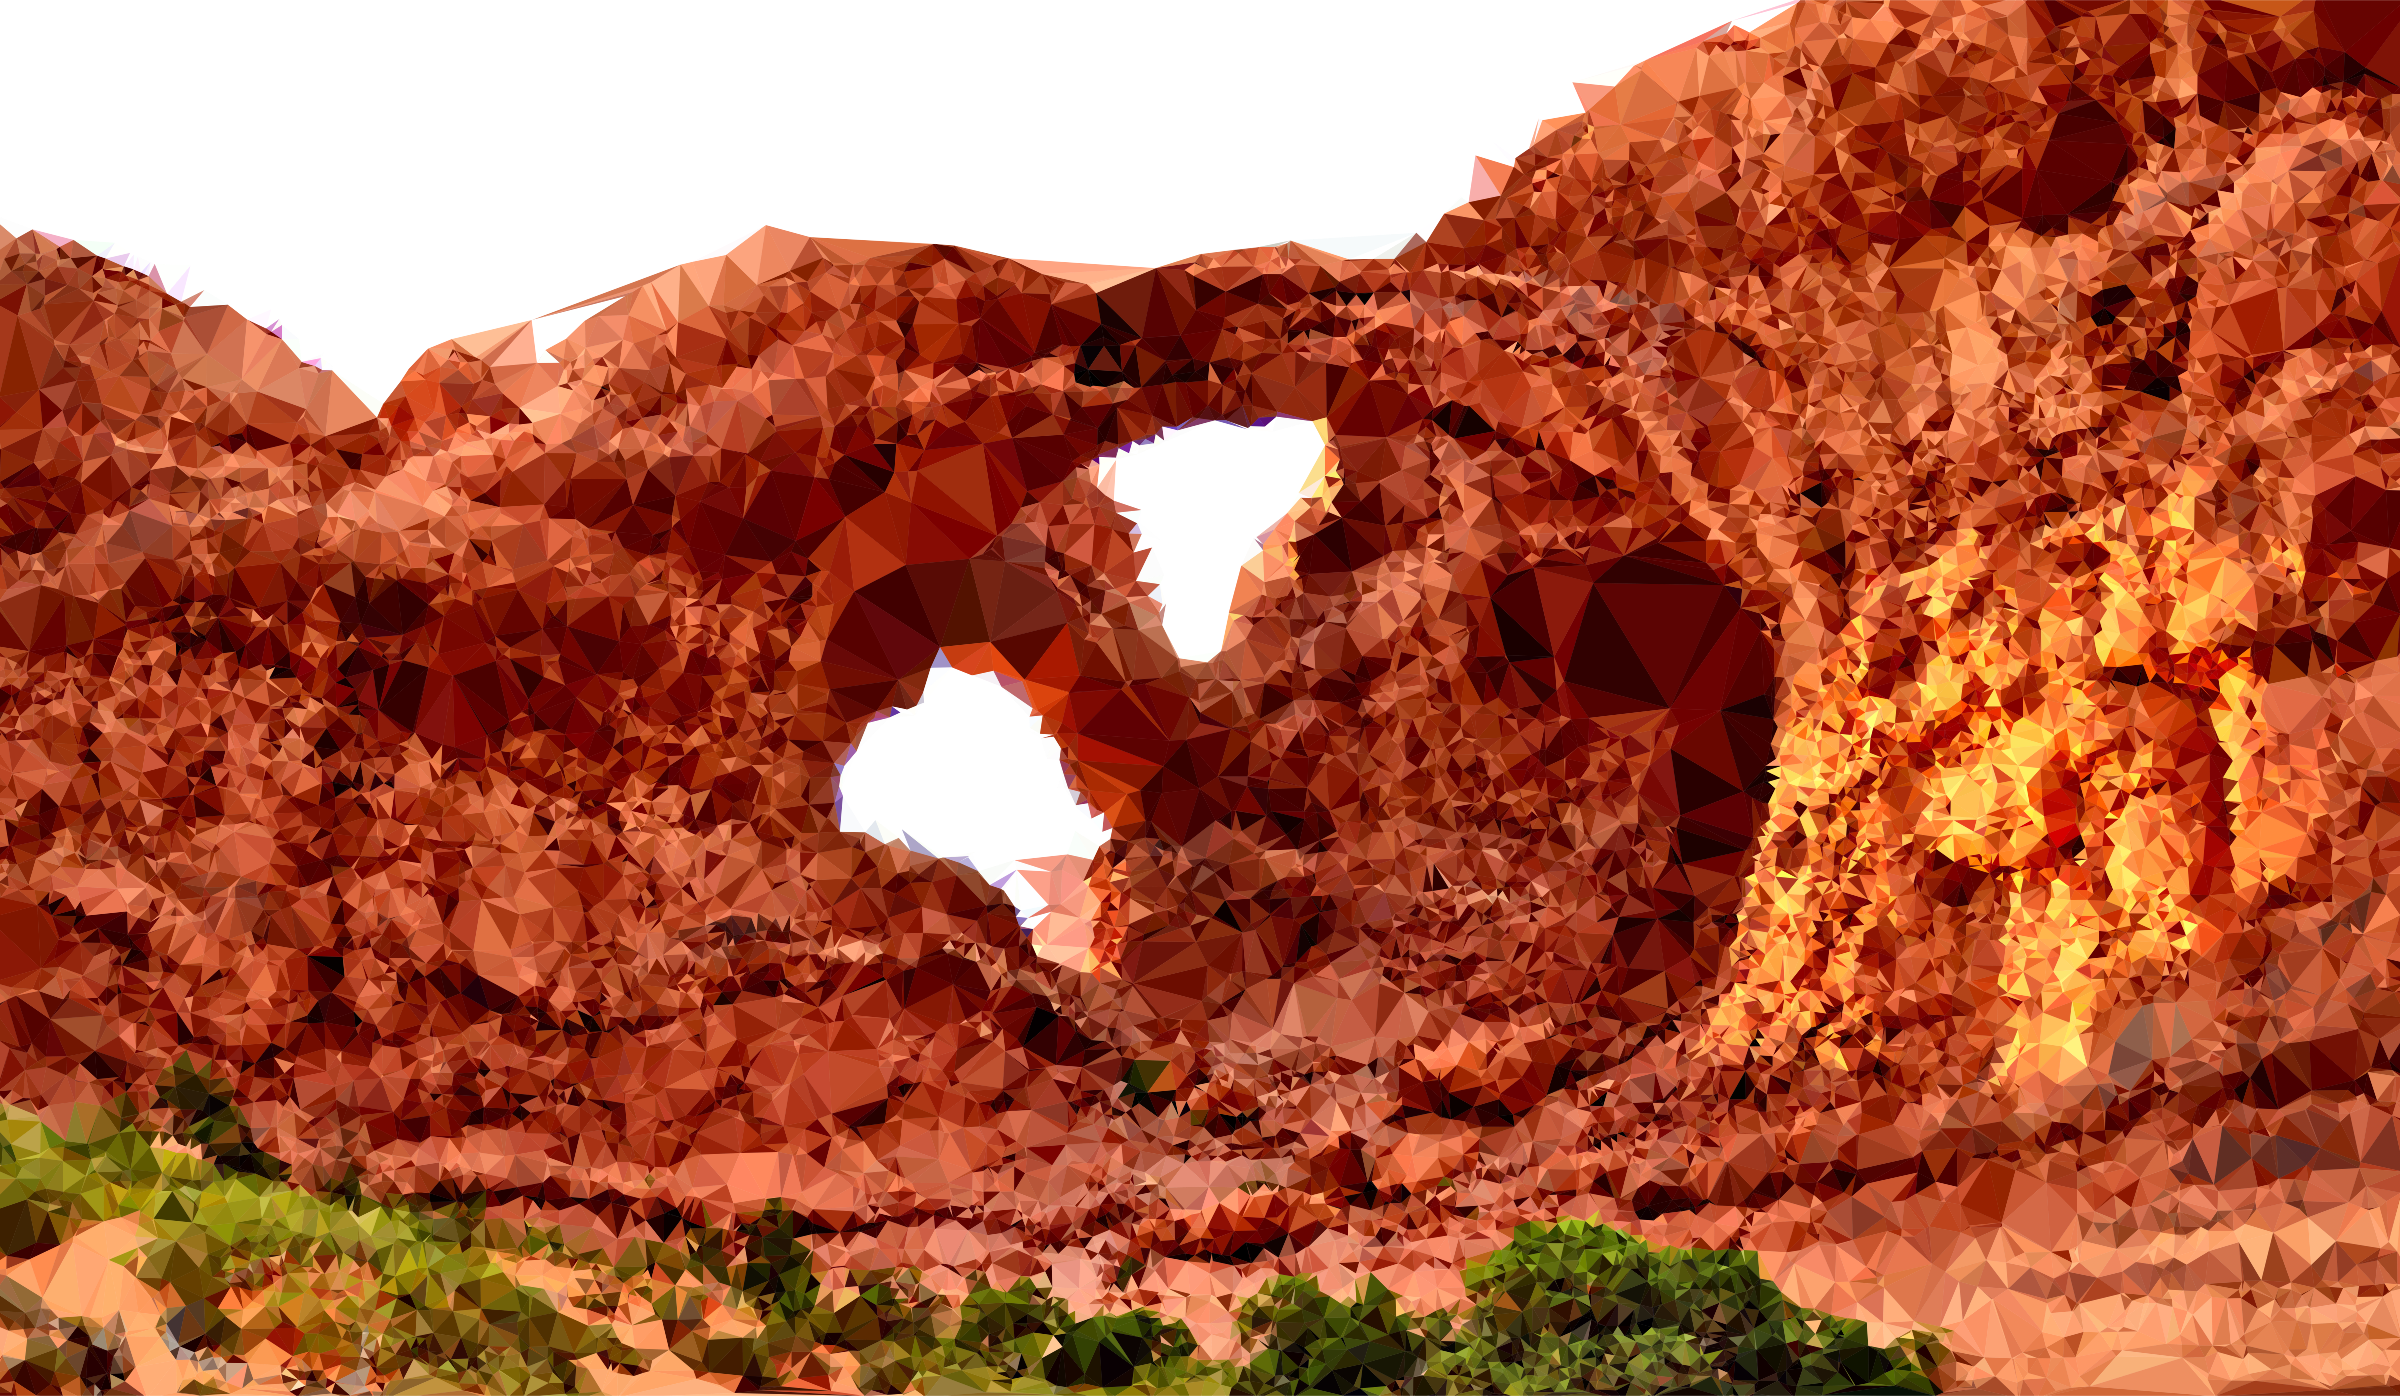 Low Poly Arches National Park by GDJ